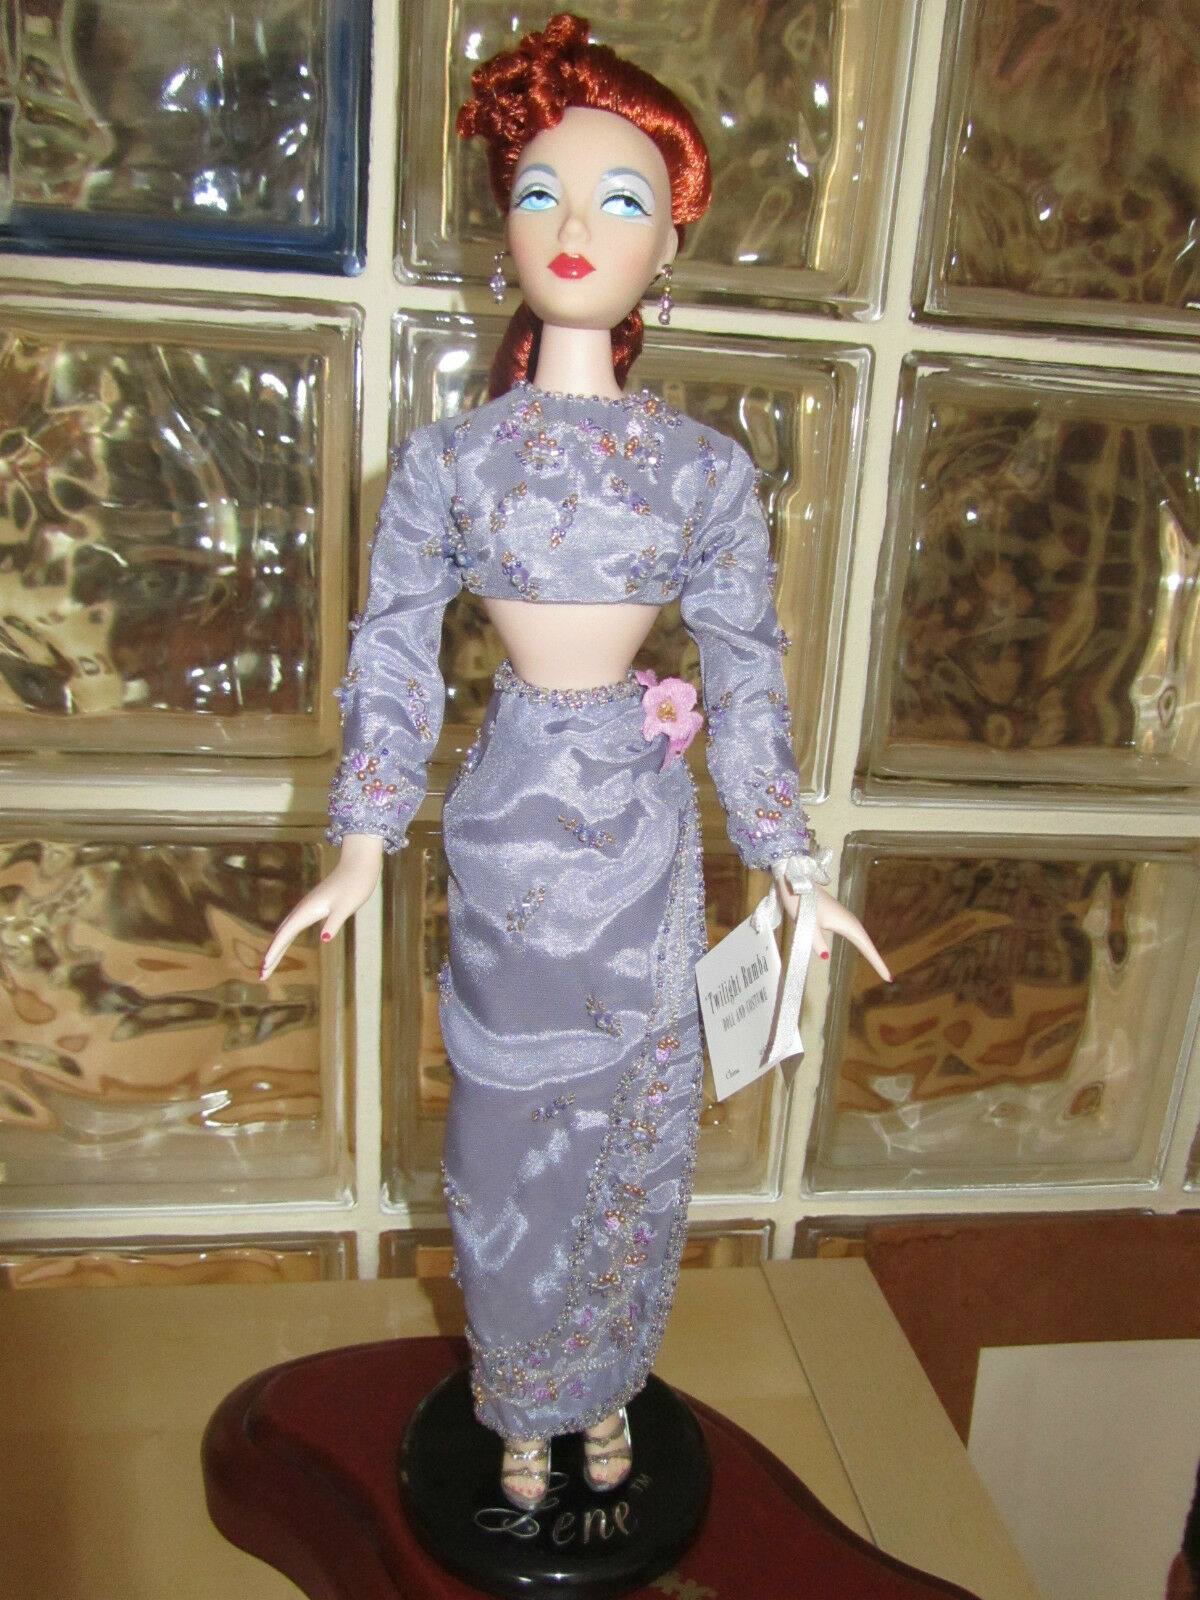 MANIQUI, GENE, Twilight Rumba, 2000 Annual Edition Doll in the Gene collection